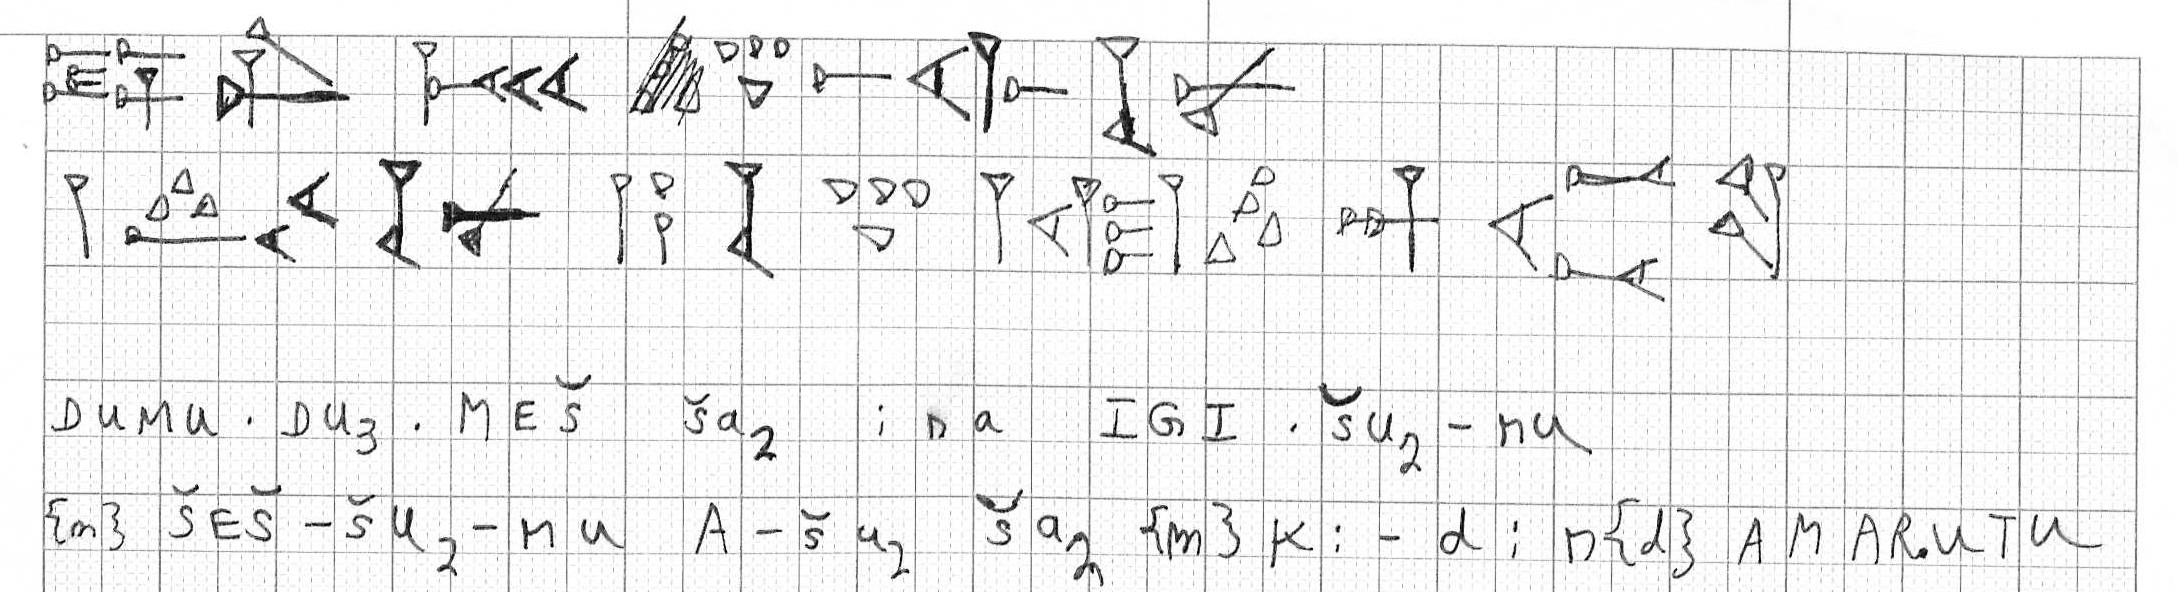 A sketch of two rows of cuneiform signs with a transcription in Latin letters below DUMU.DU3 ša2 ina IGI-šu-nu / {m}ŠEŠ-šu-nu A-šu ša2 {m}Ki-din-{d}AMAR.UTU